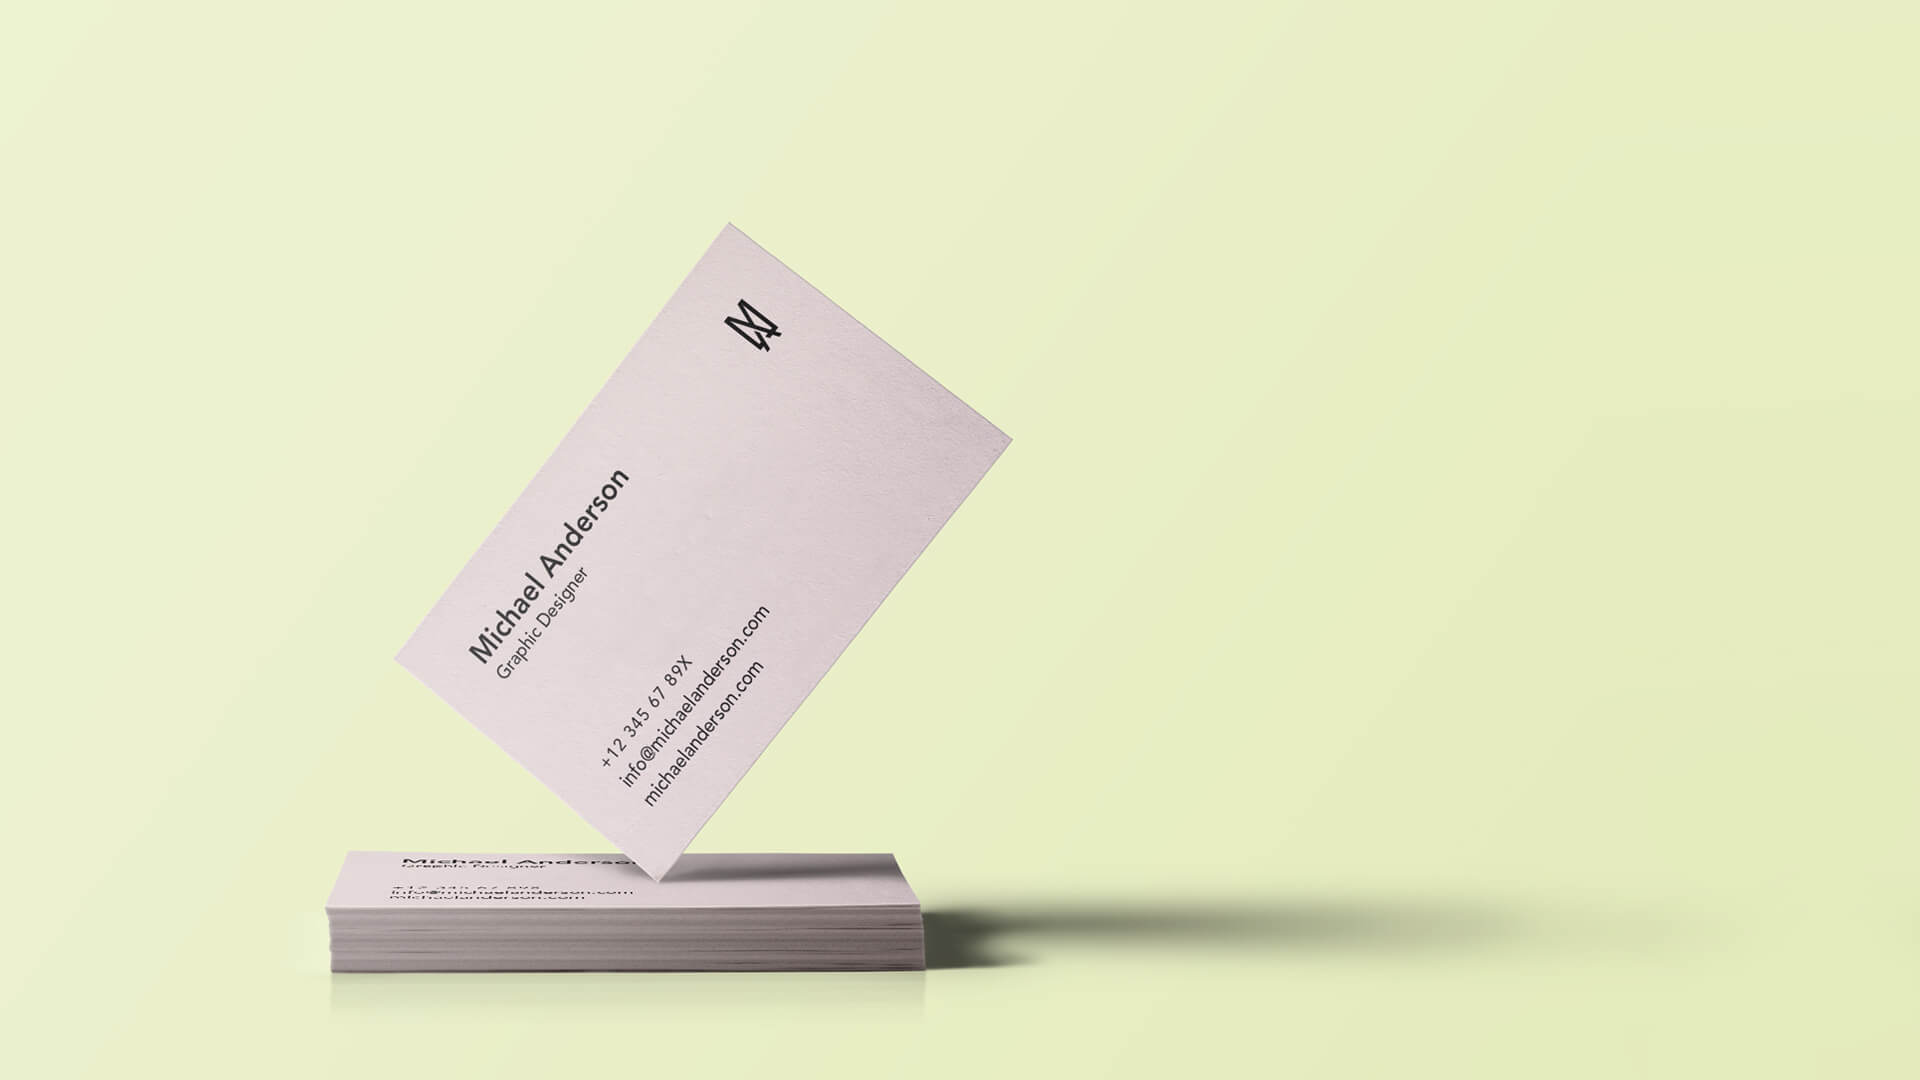 michael anderson business card mockup on yellow background